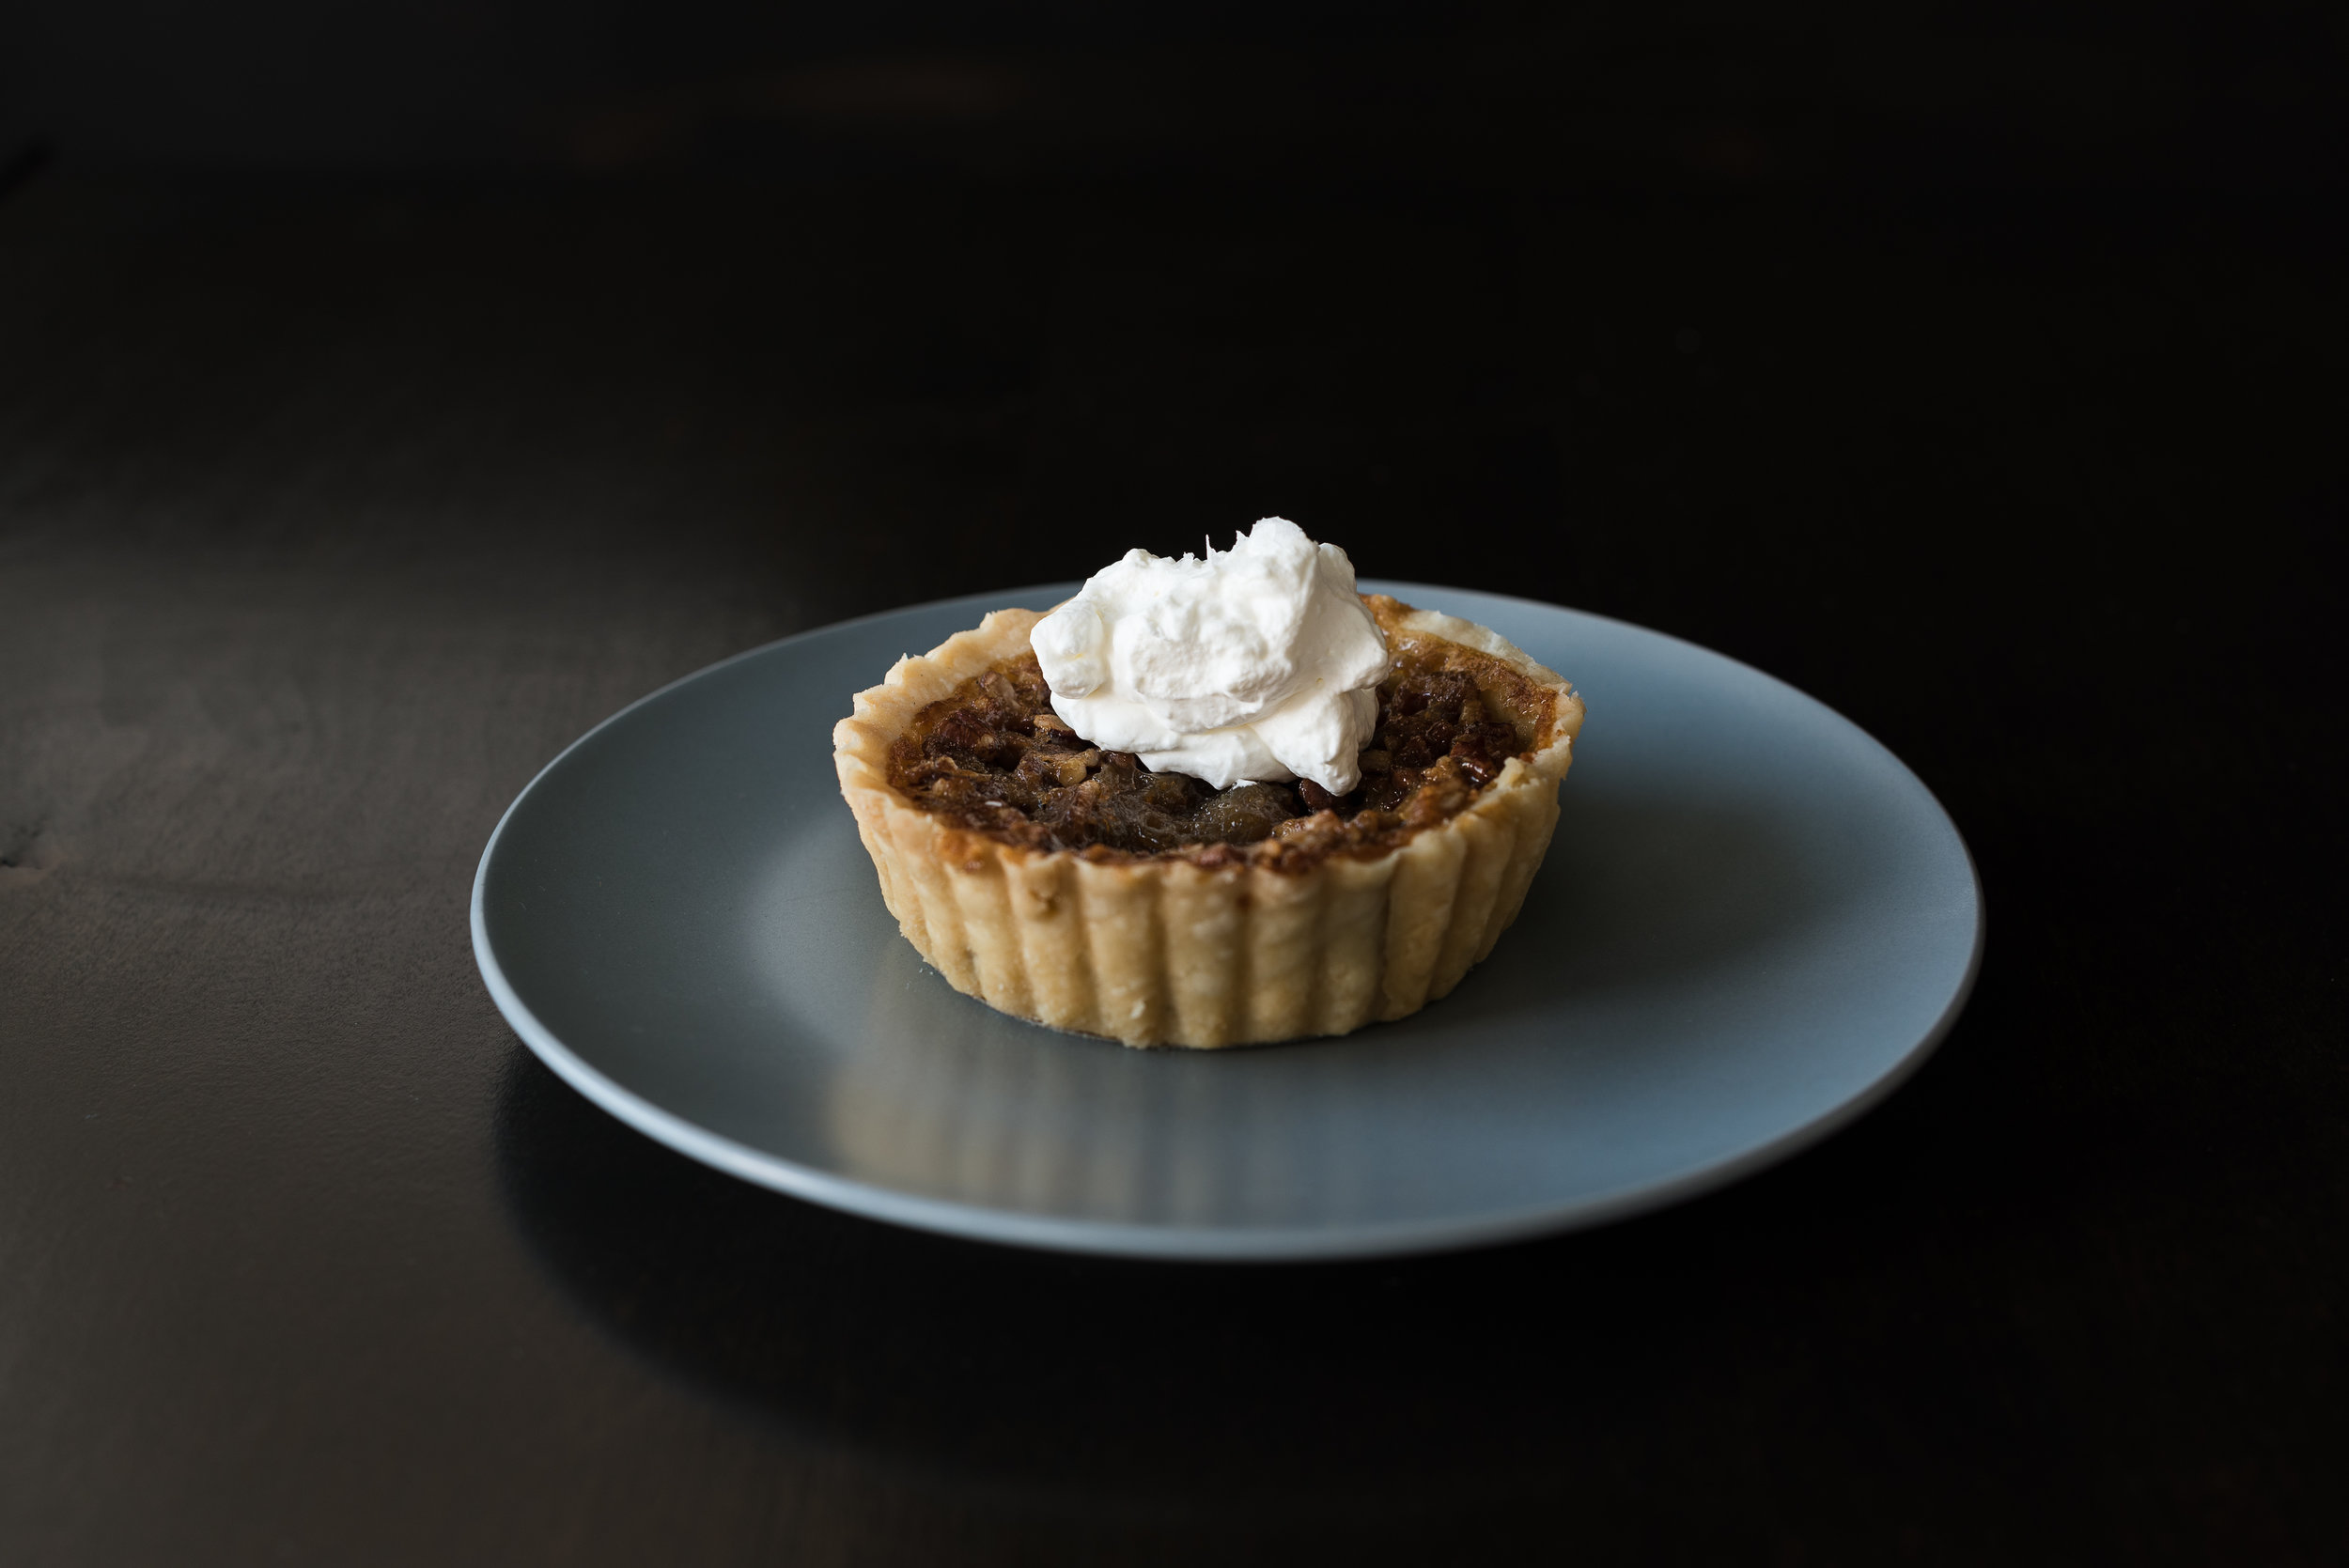 Pecan pie with salted whip (Caroline's mother's recipe)